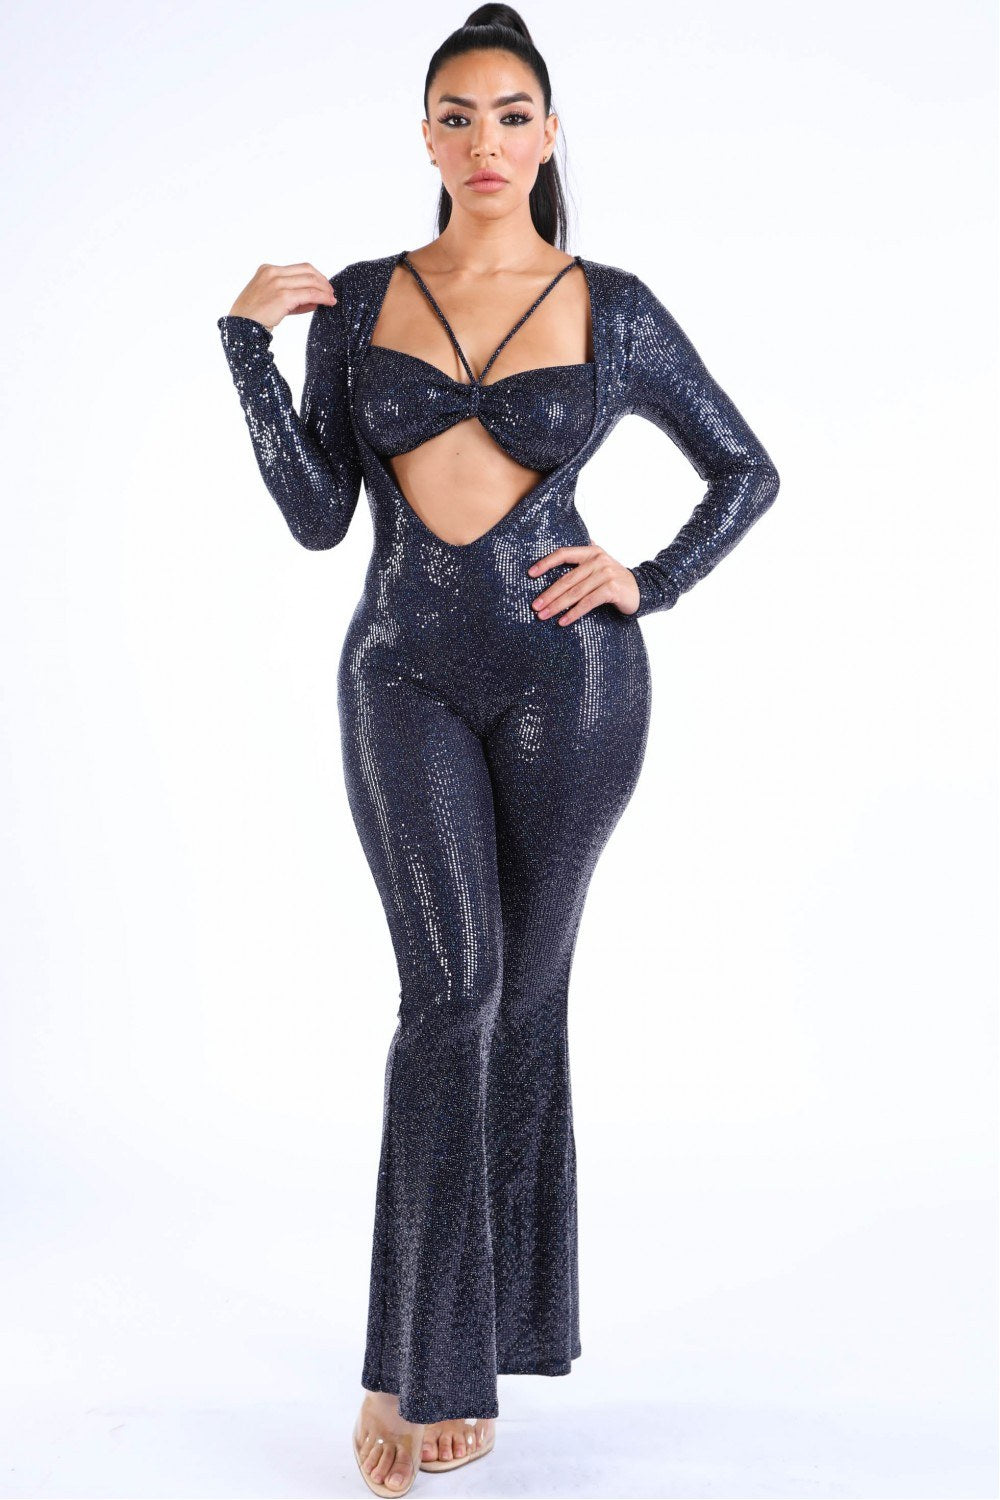 Bikini Top Long Sleeve Jumpsuit